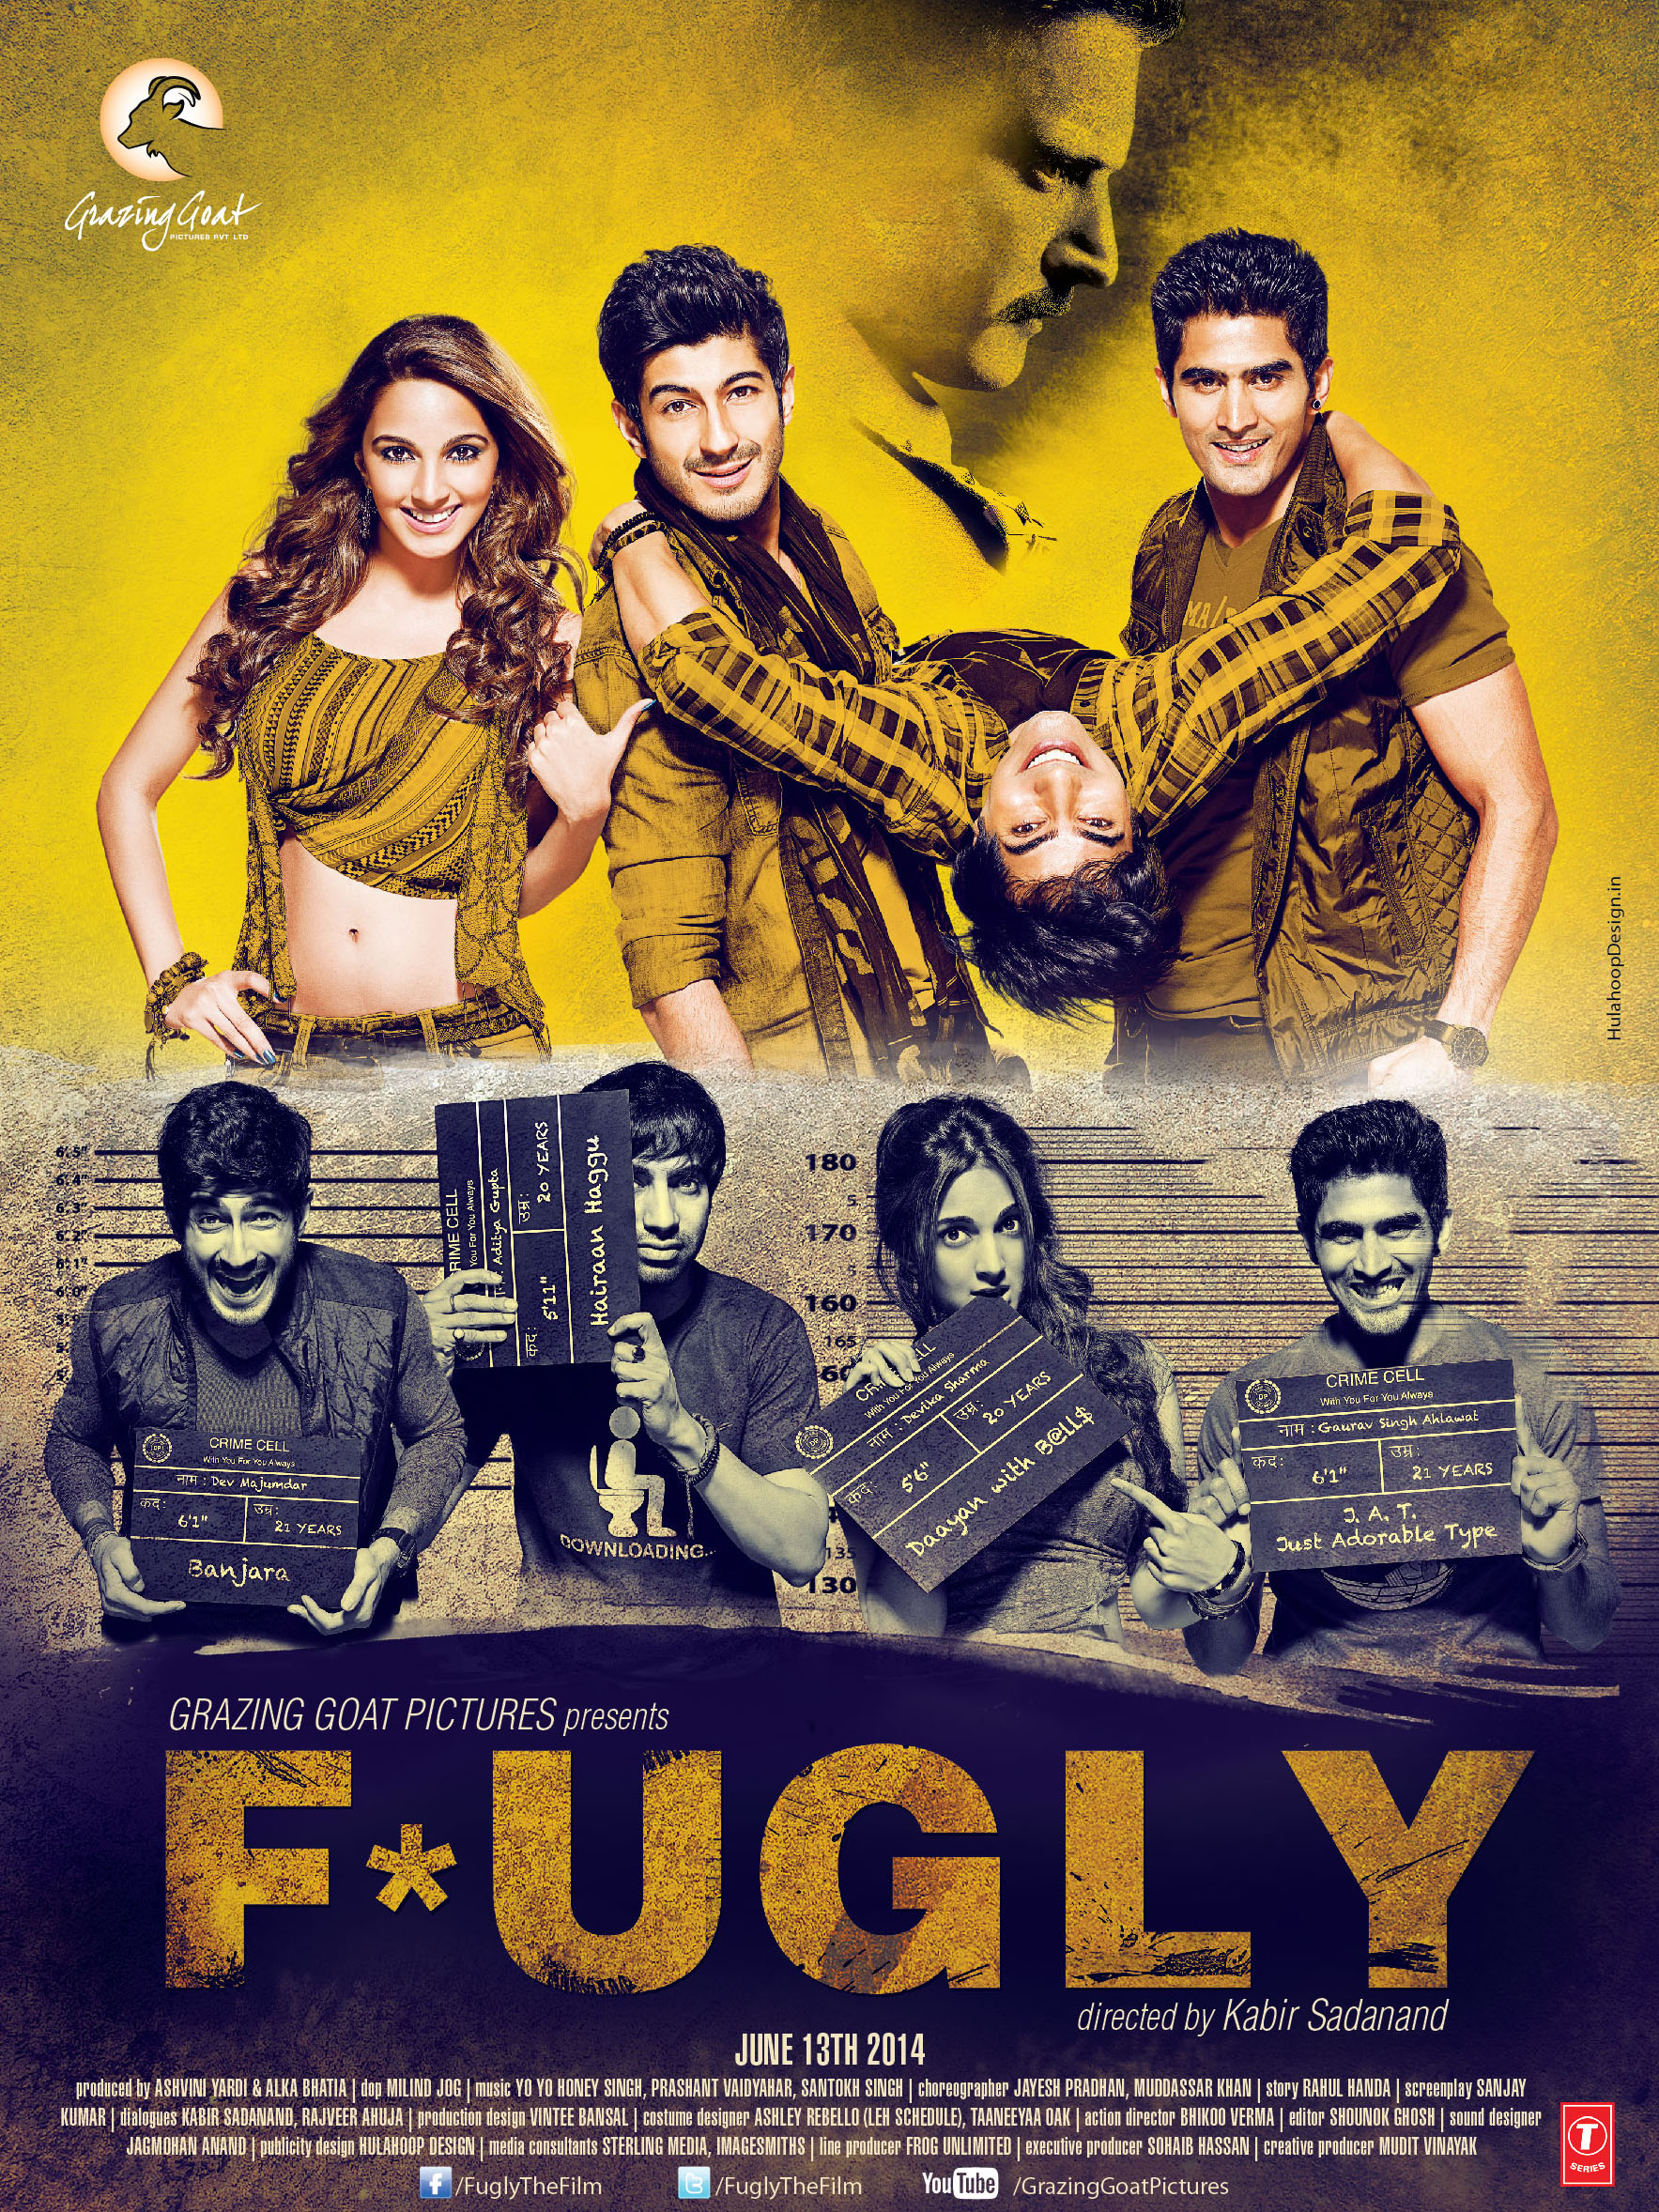 Fugly-poster_small30x40cm